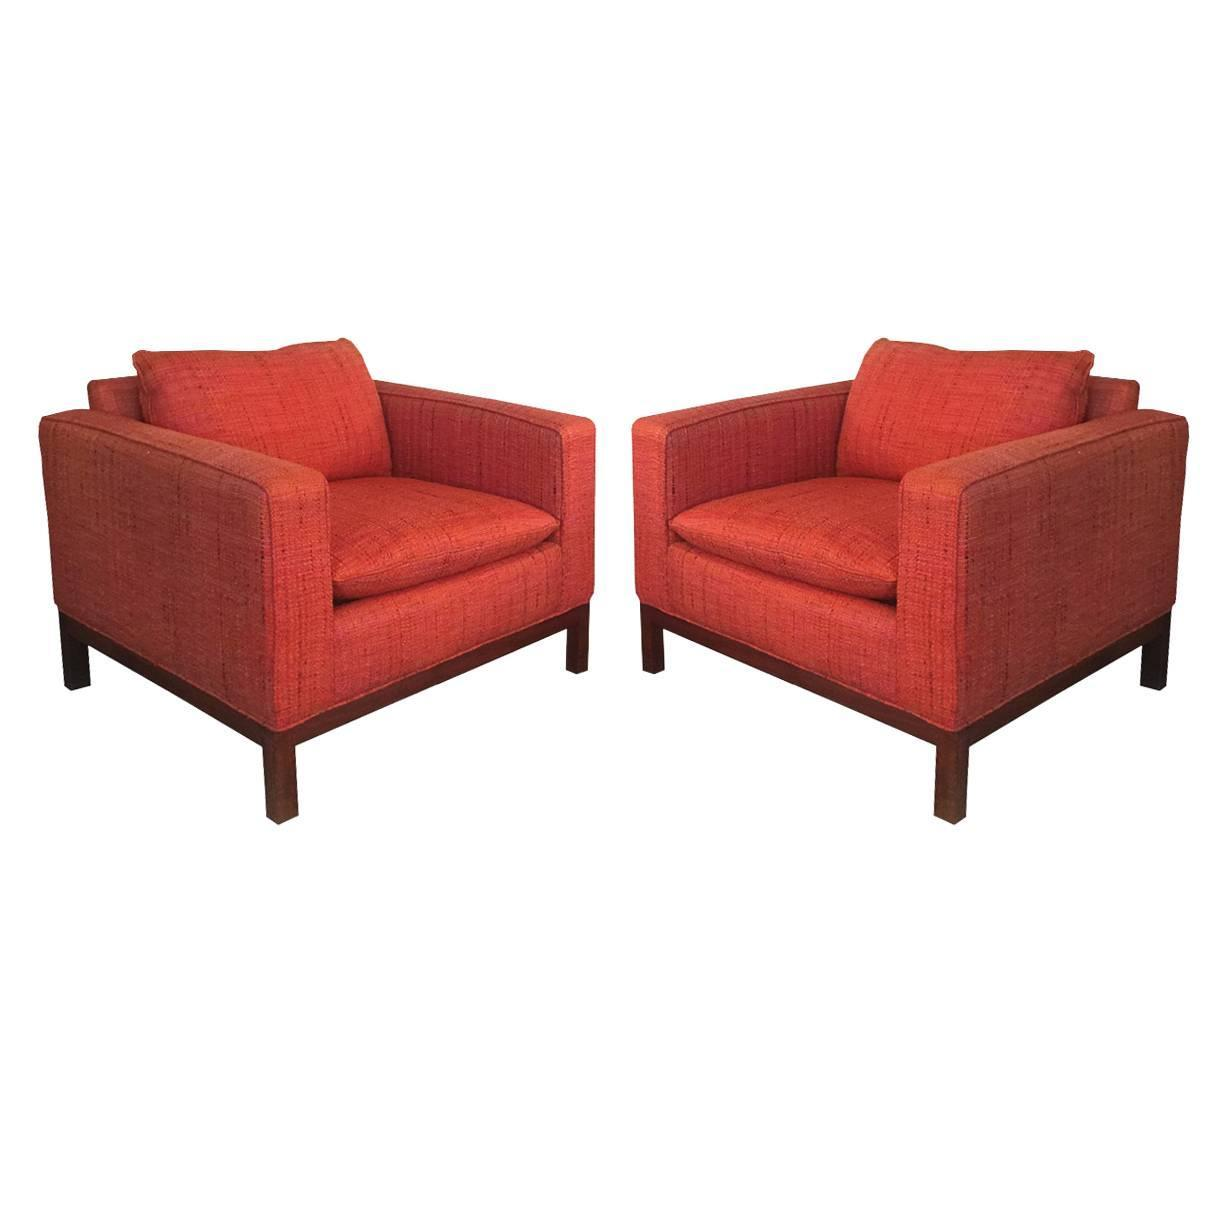 Pair of Orange Tweed Cube Club Chairs at 1stdibs